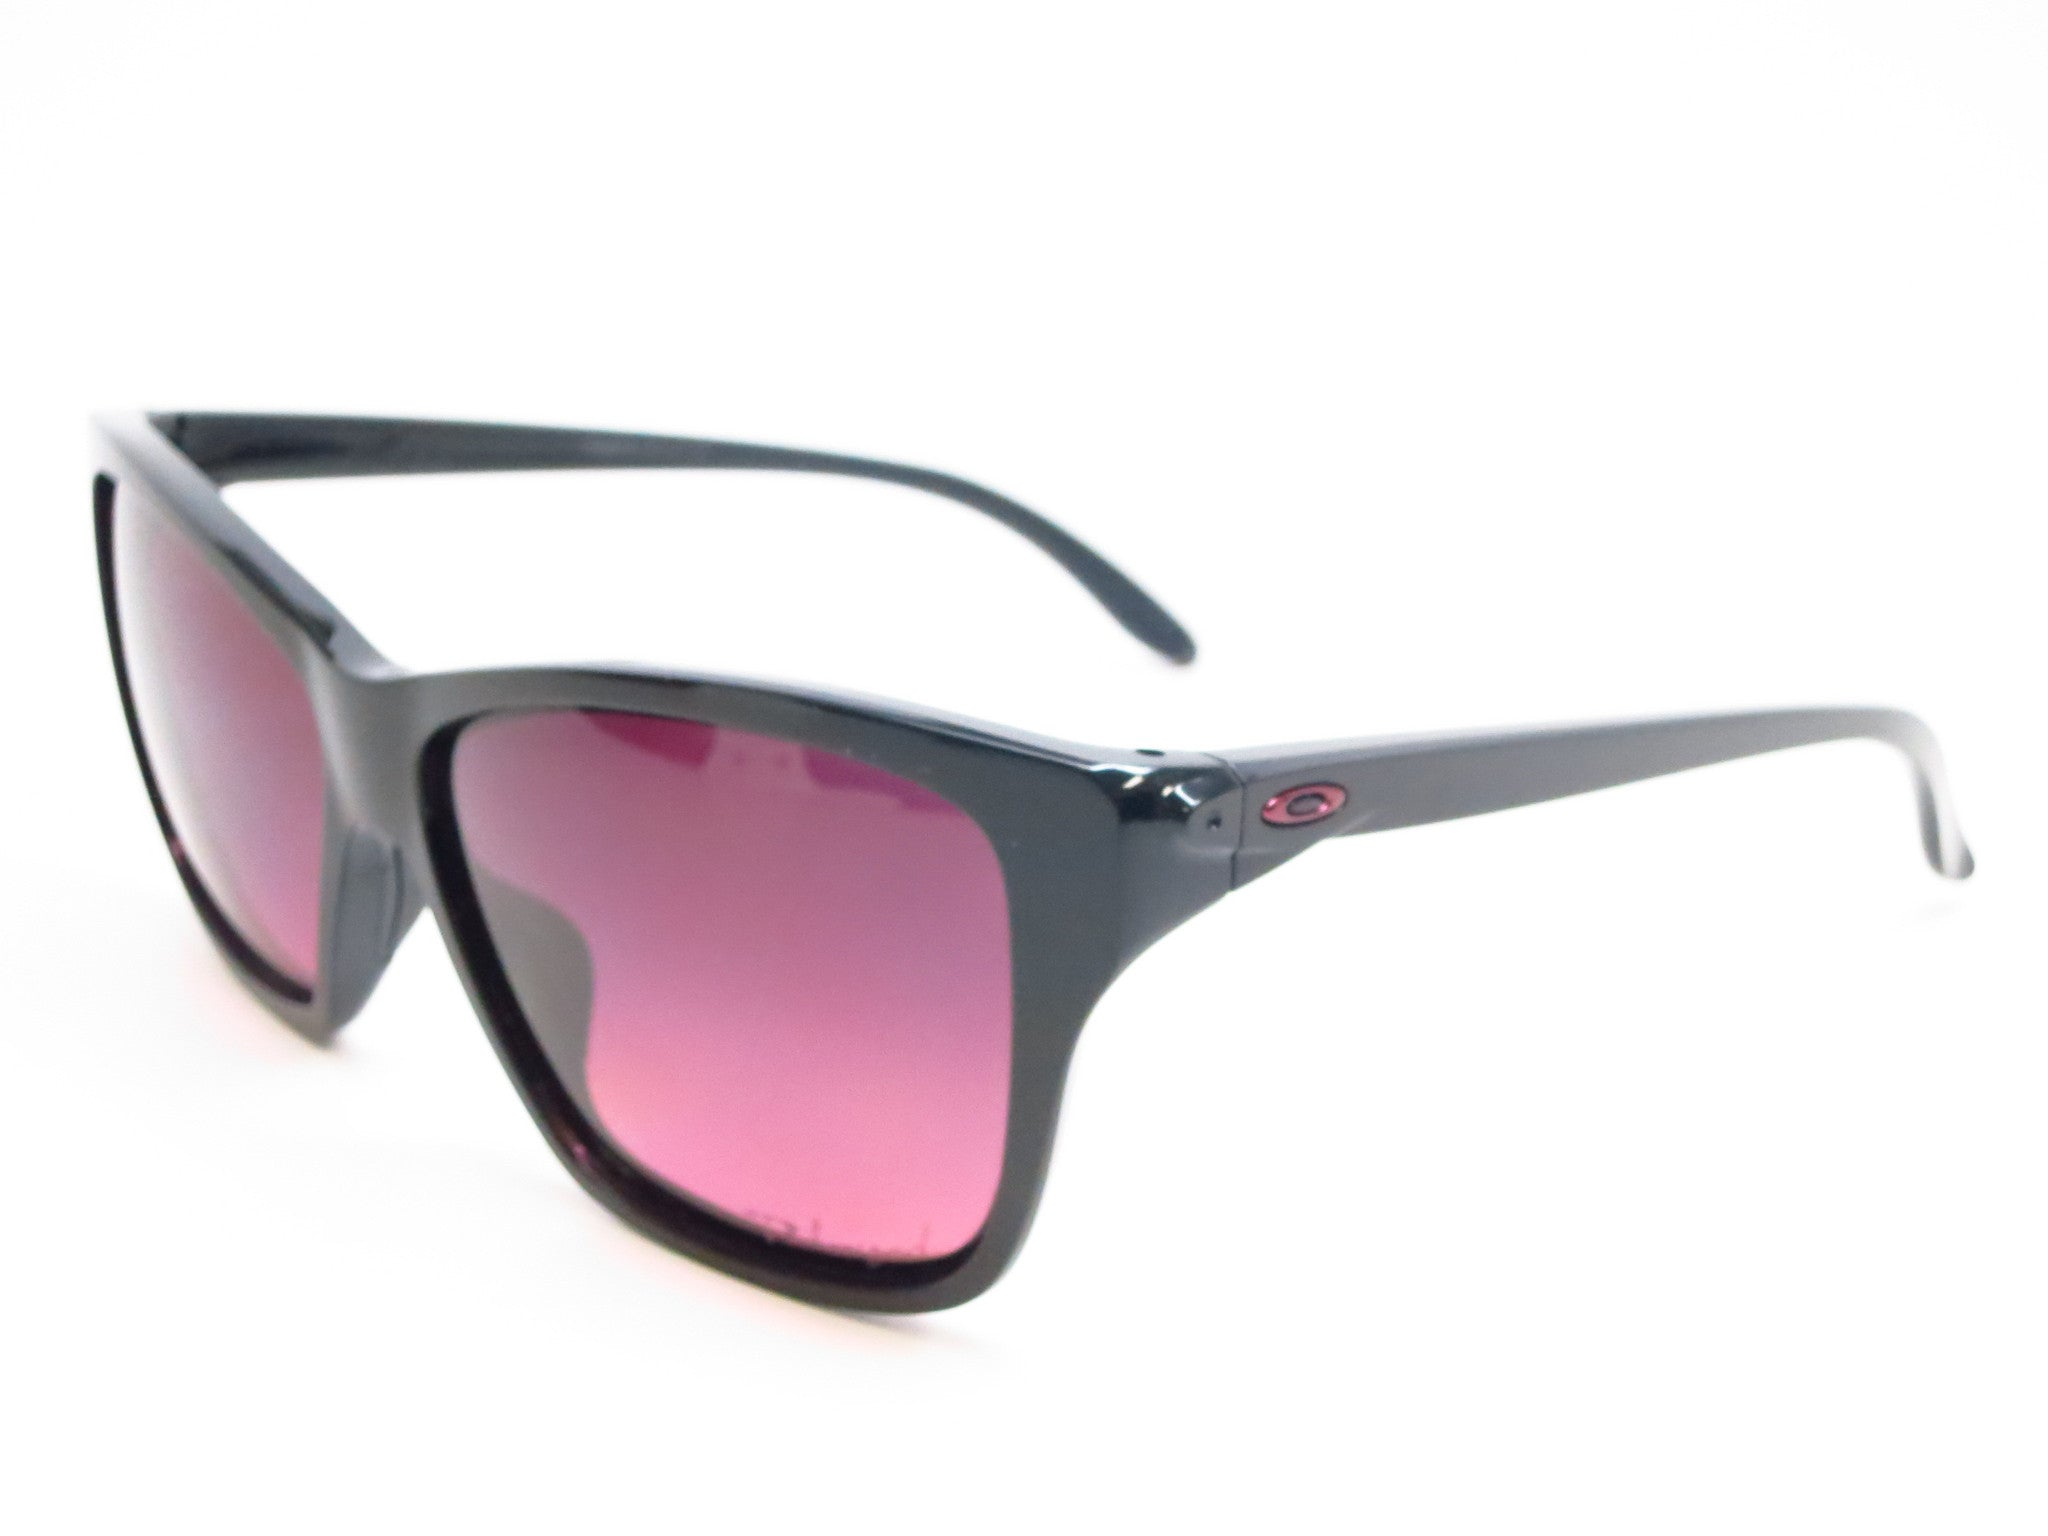 161a7a4a314 Heritage Malta Sunglasses Outlet Sale Day Oakley One « xvRwq6pA